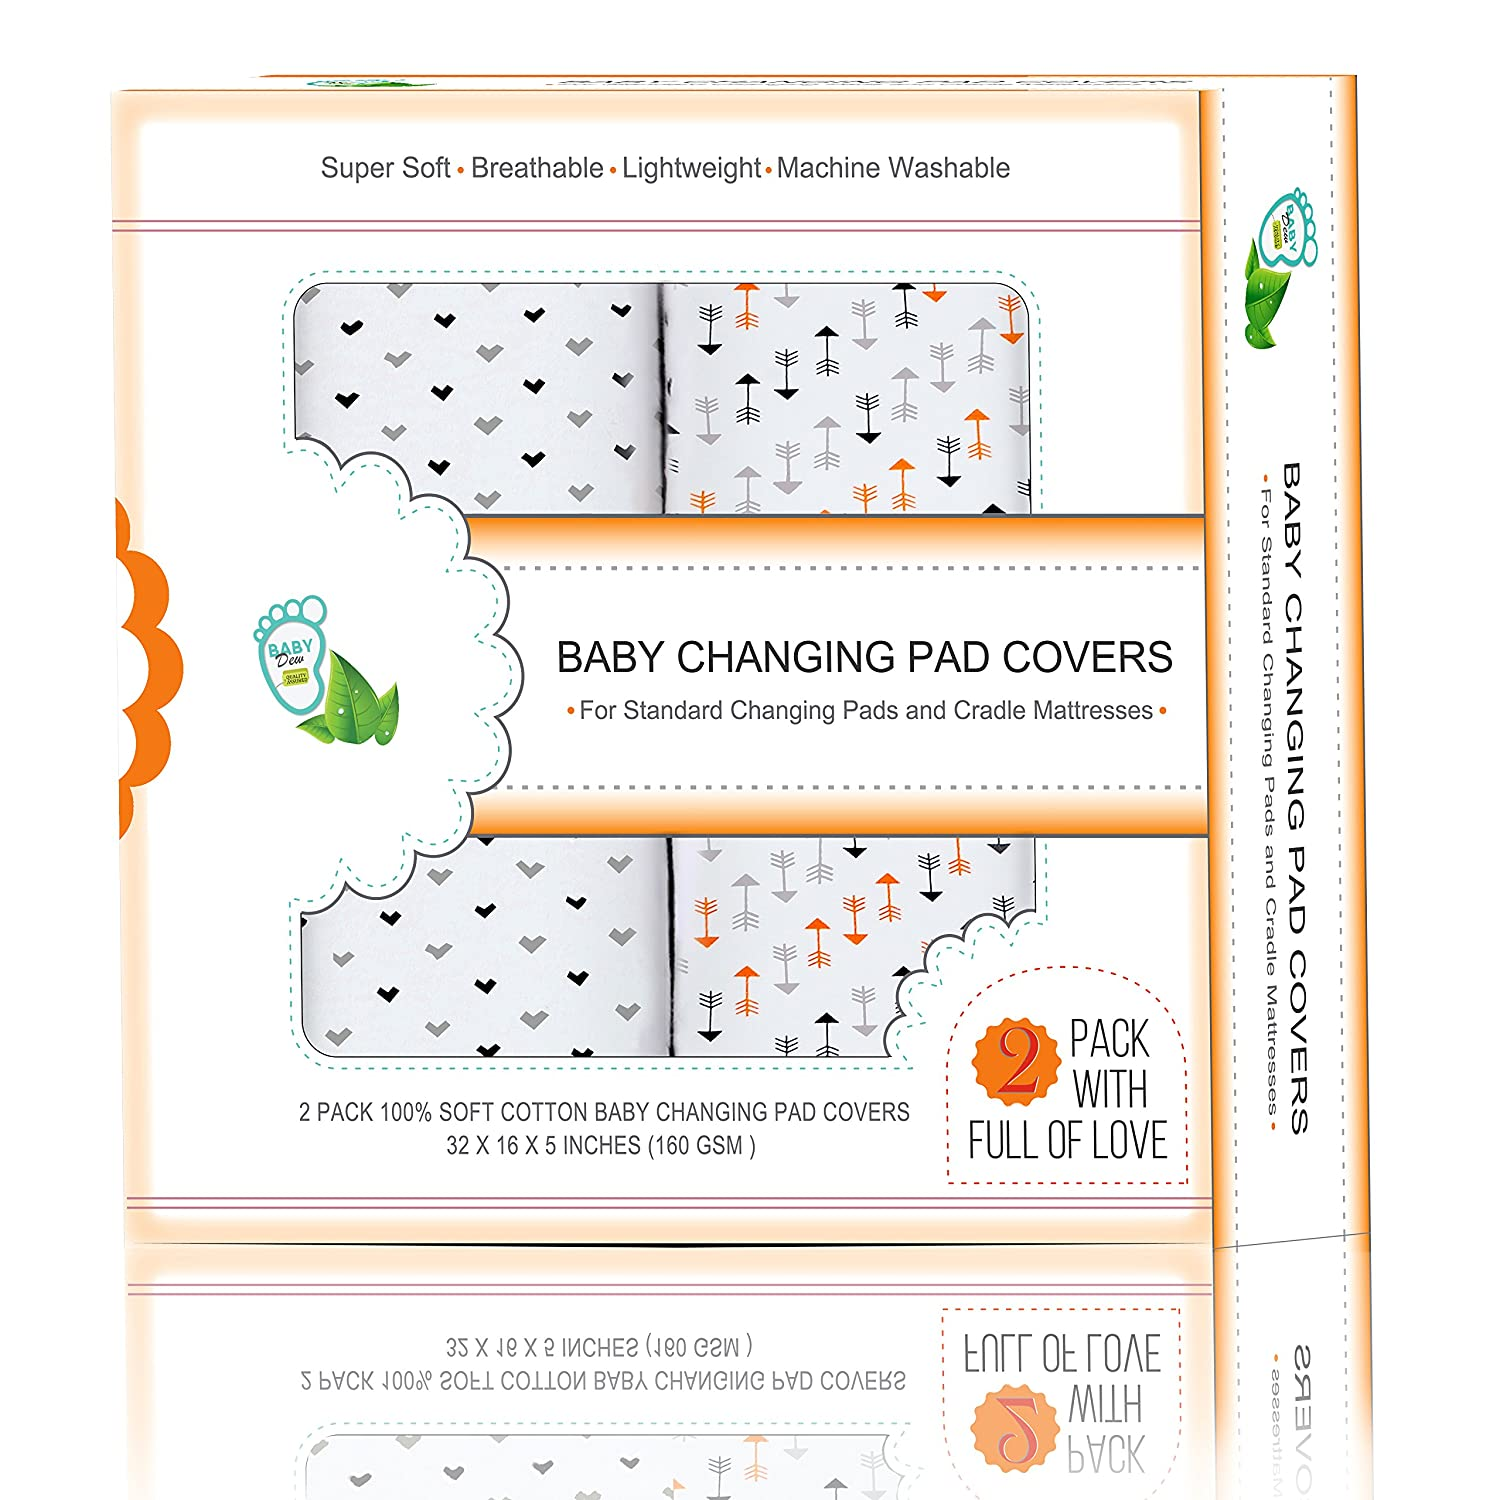 Baby Diaper Changing Pad Covers 2 Pack 32x16x5'' For Cradle Mattresses & Standard Pads | Lovely Patterns & Unisex Colors | Breathable Cotton Fabric Protect your Baby's Skin | Minimize Wetness & Stains BabyDew